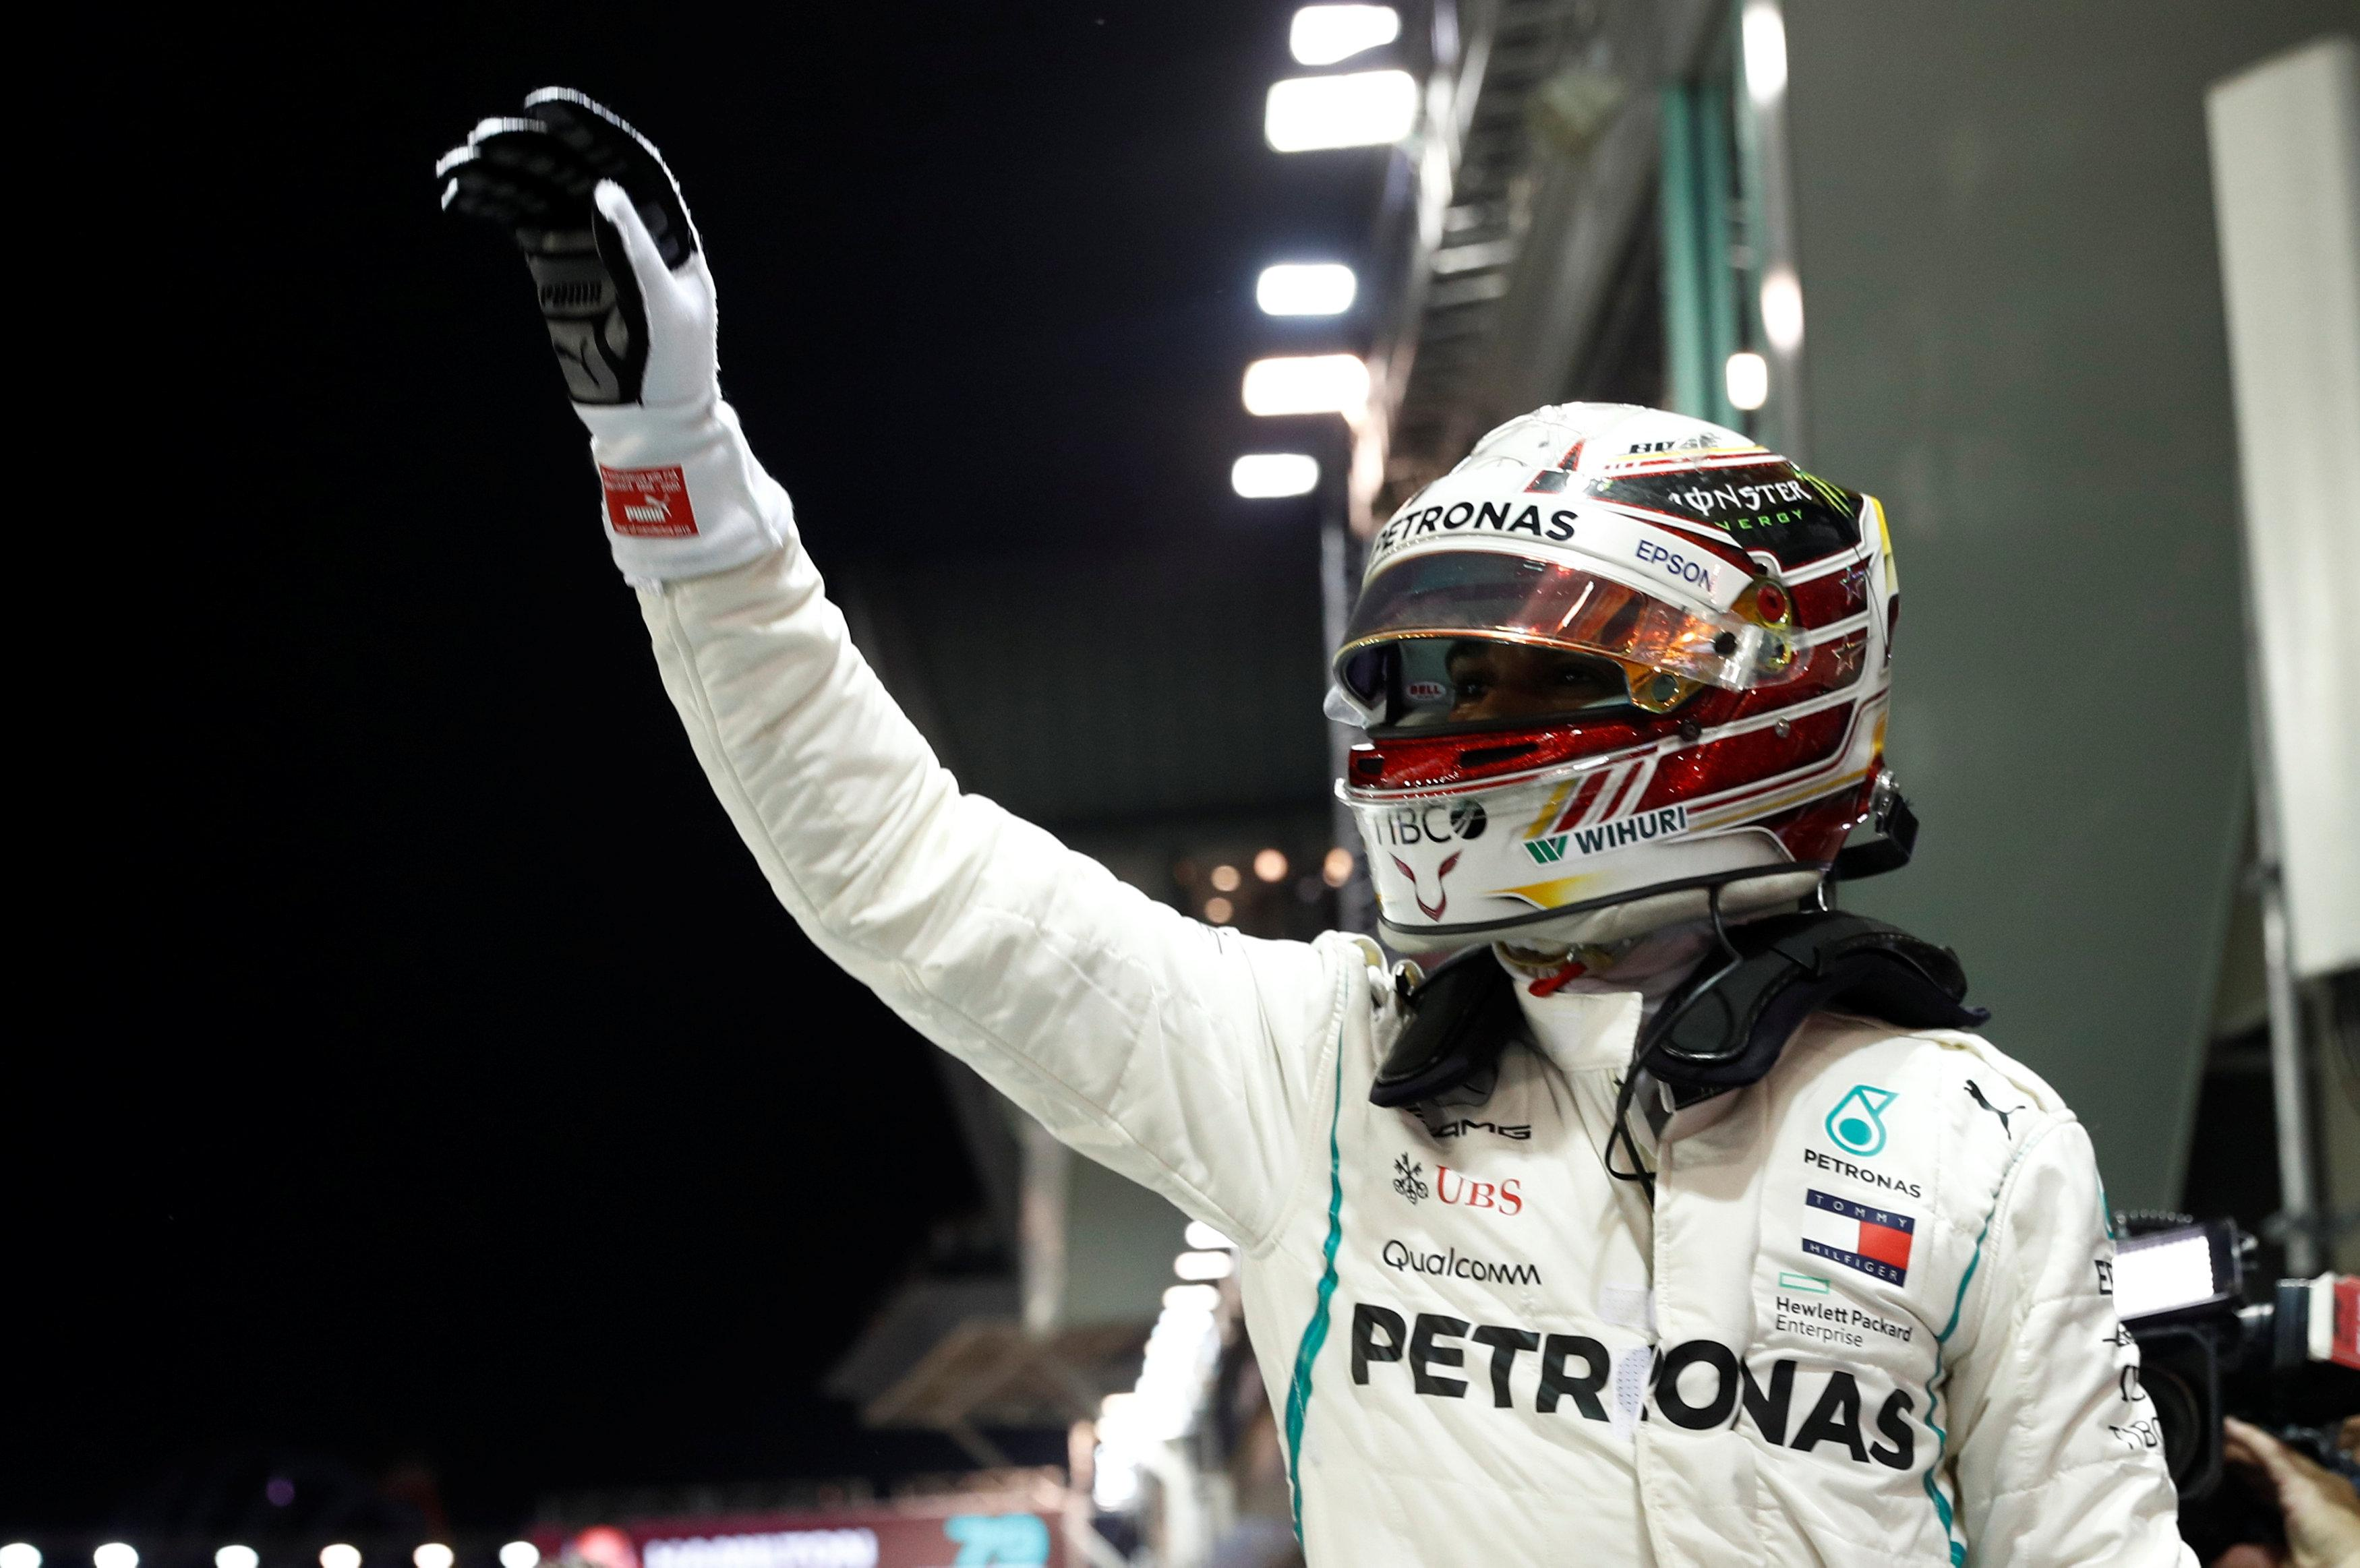 Hamilton hailed his pole lap as one of the best of his career